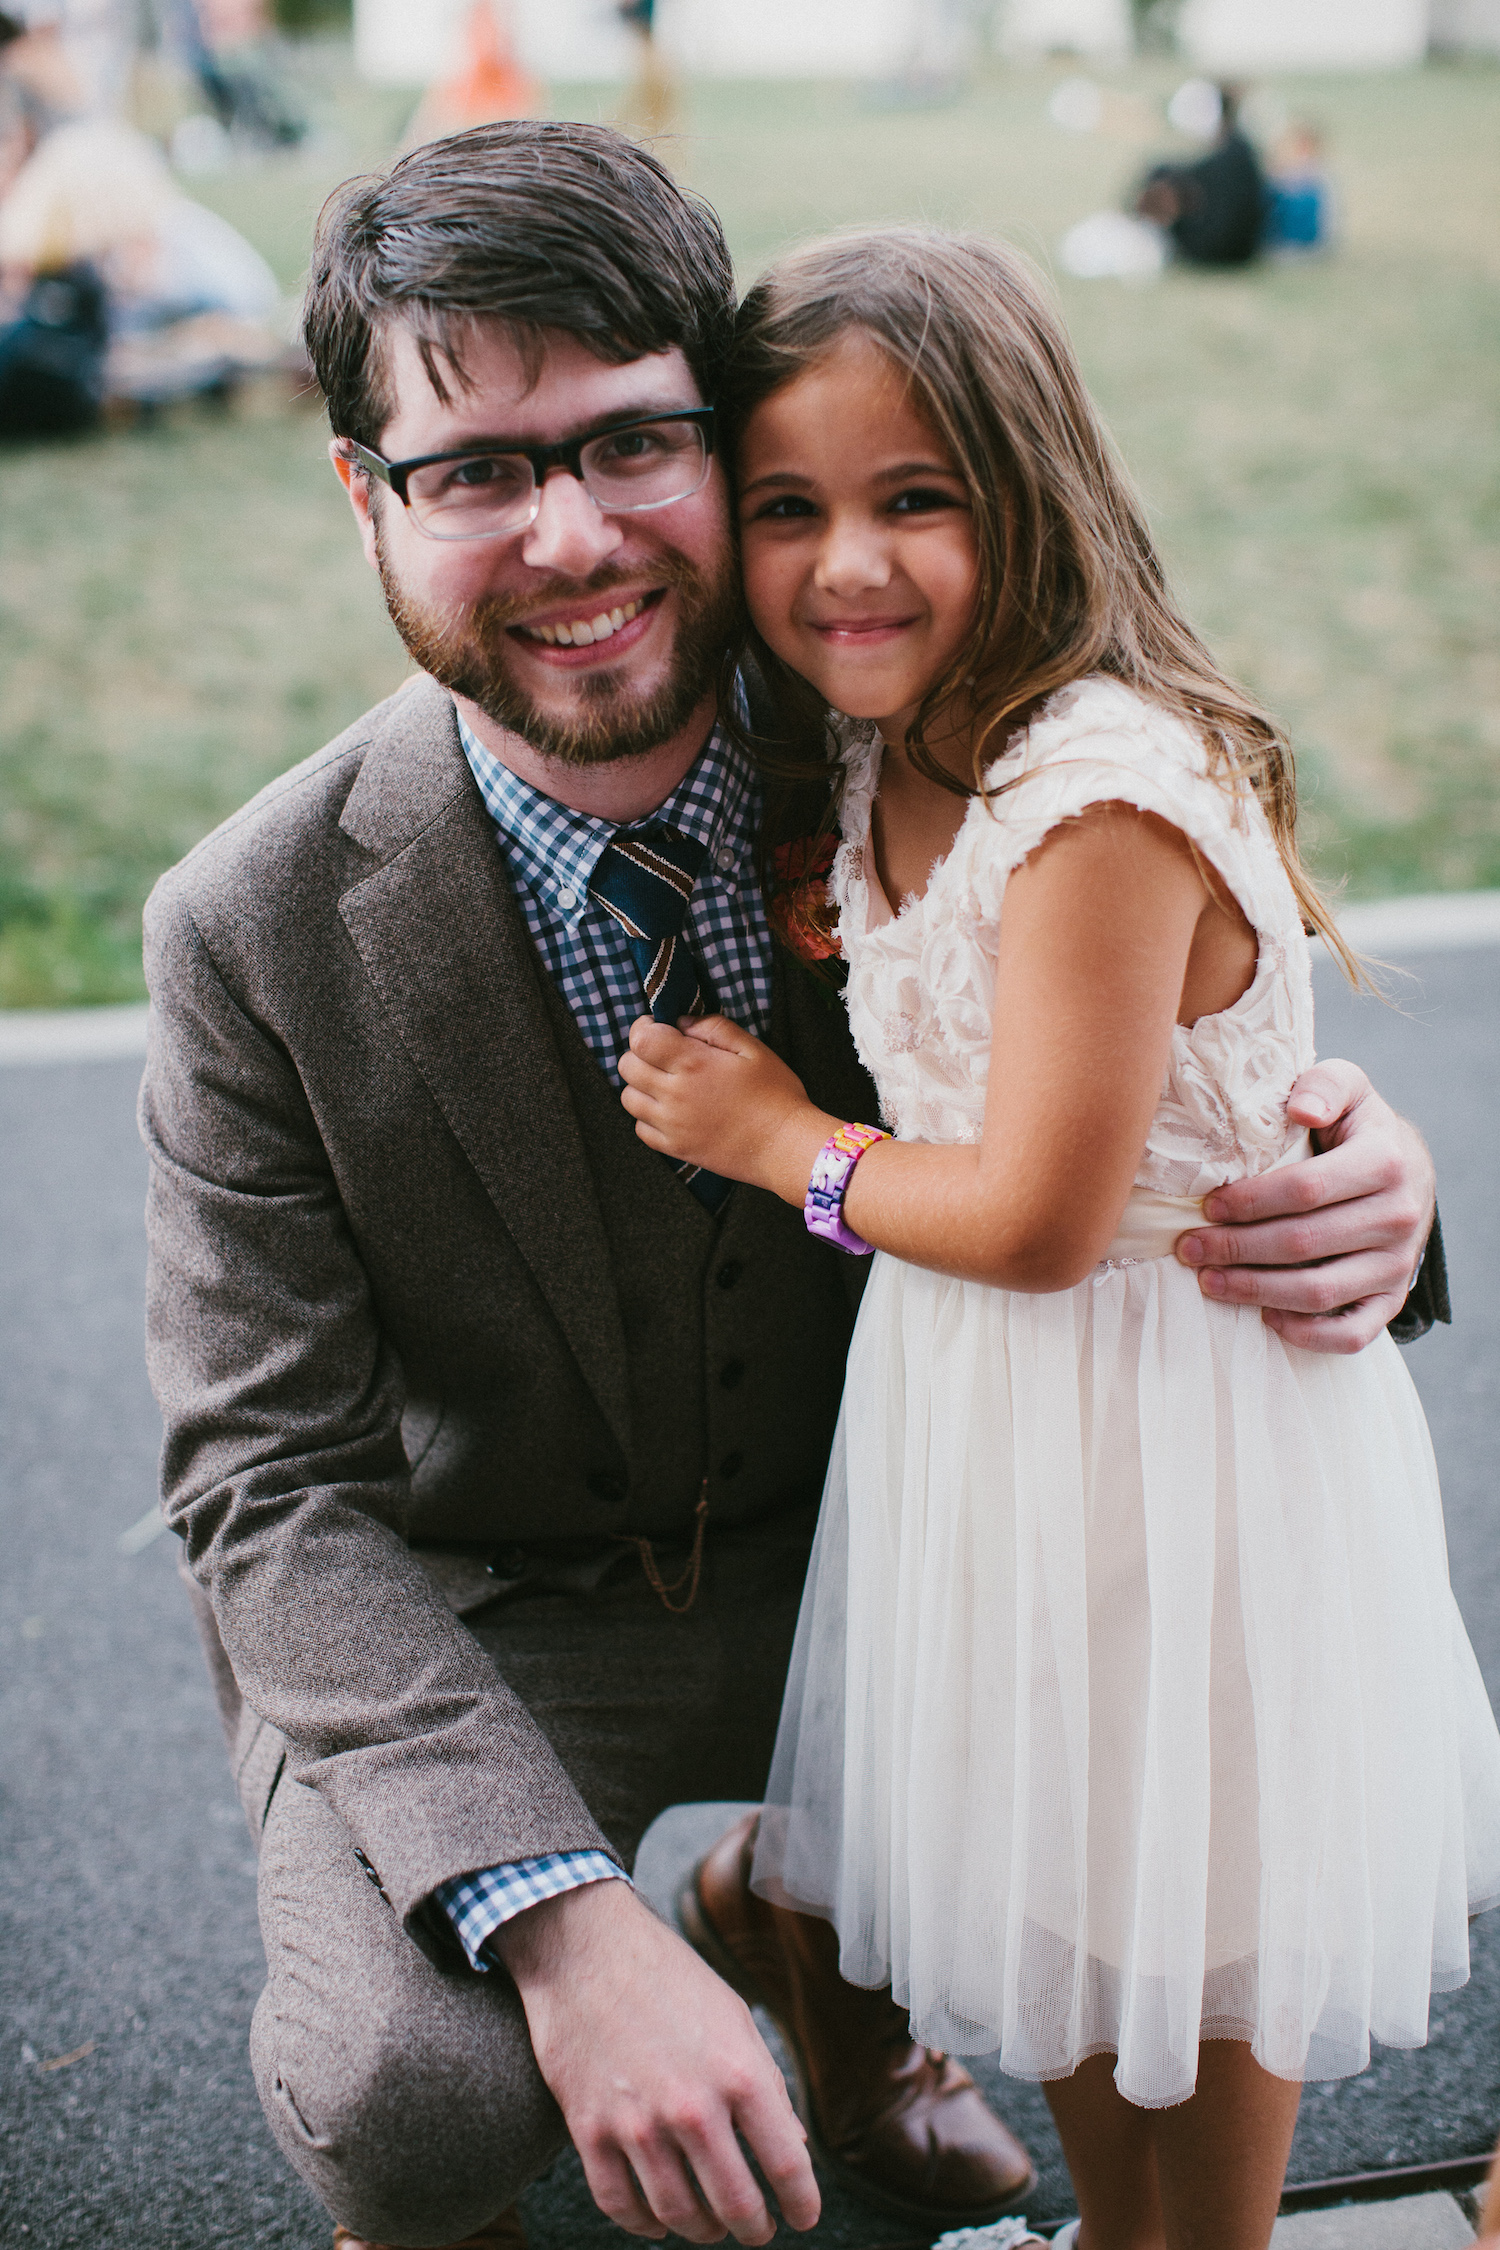 Full Aperture Floral & Corey Torpie Photography  - Brooklyn Wedding - 22.jpeg